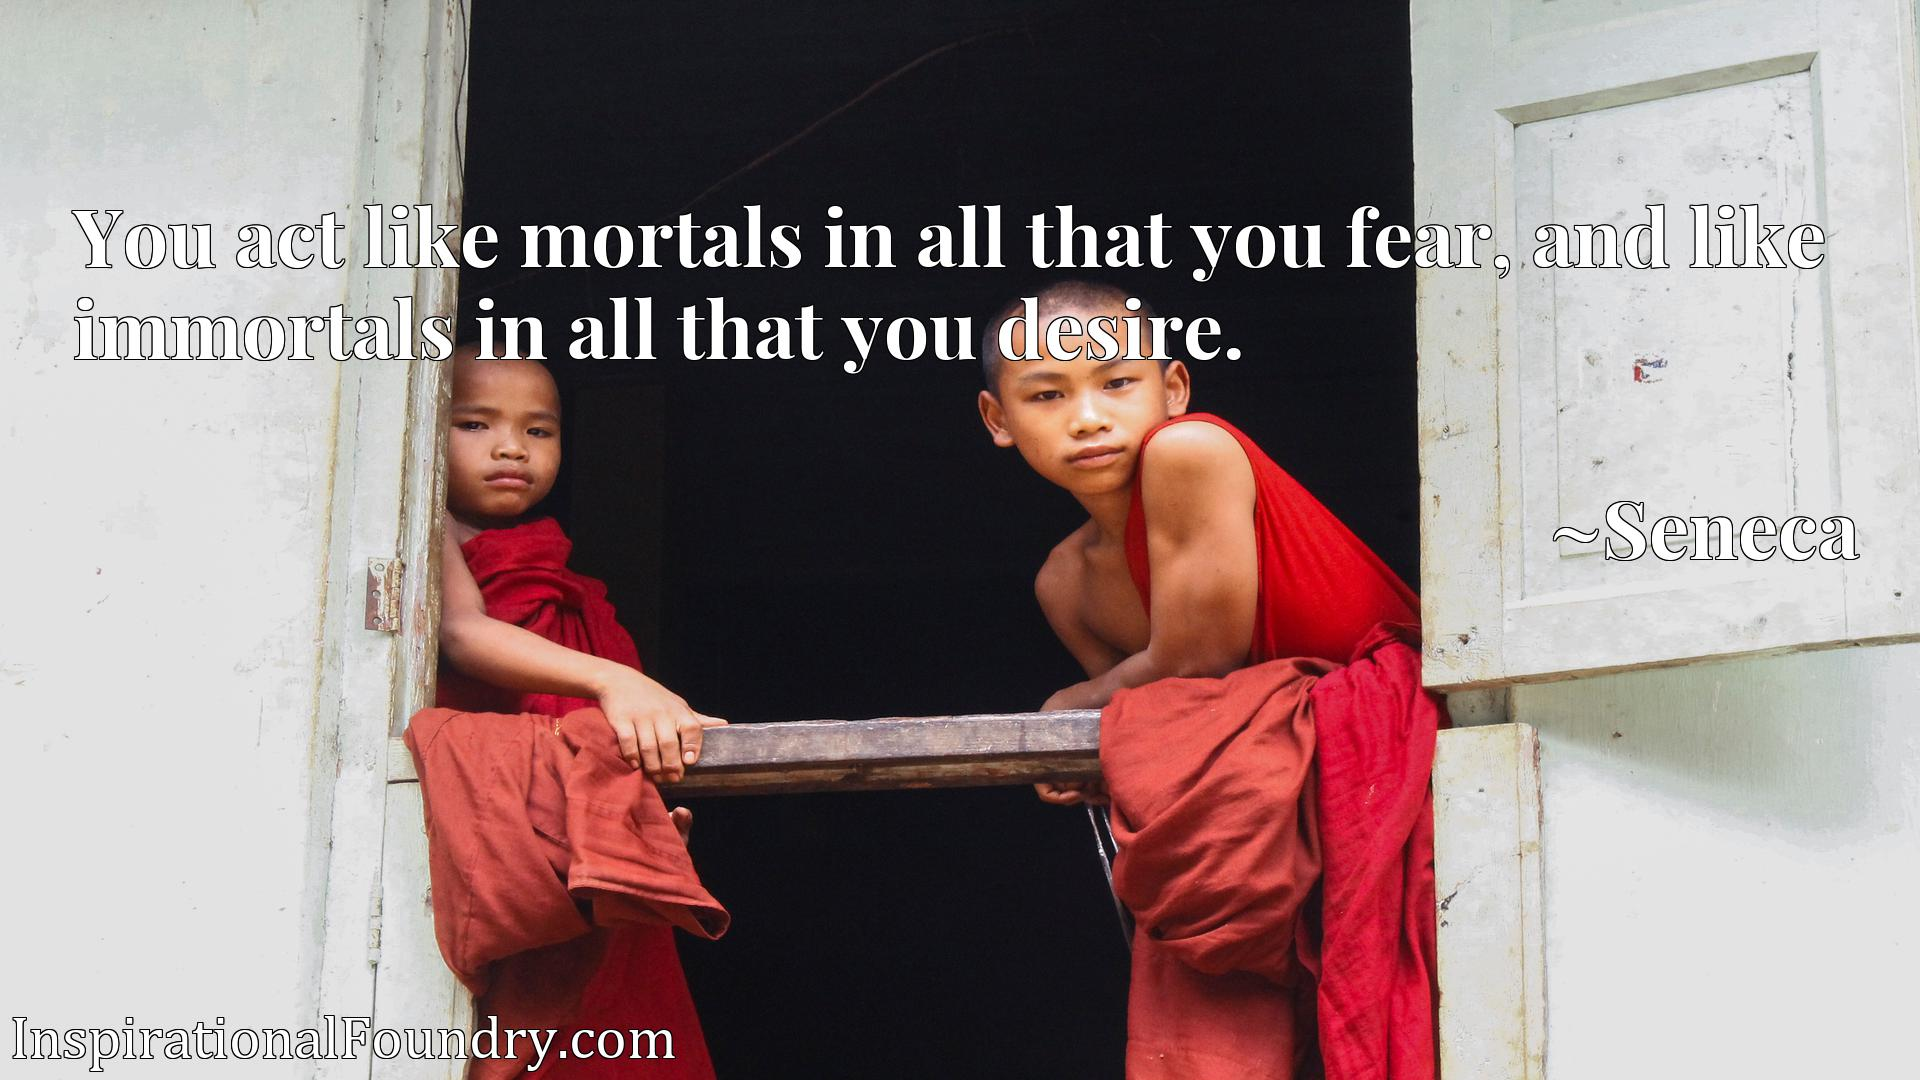 You act like mortals in all that you fear, and like immortals in all that you desire.